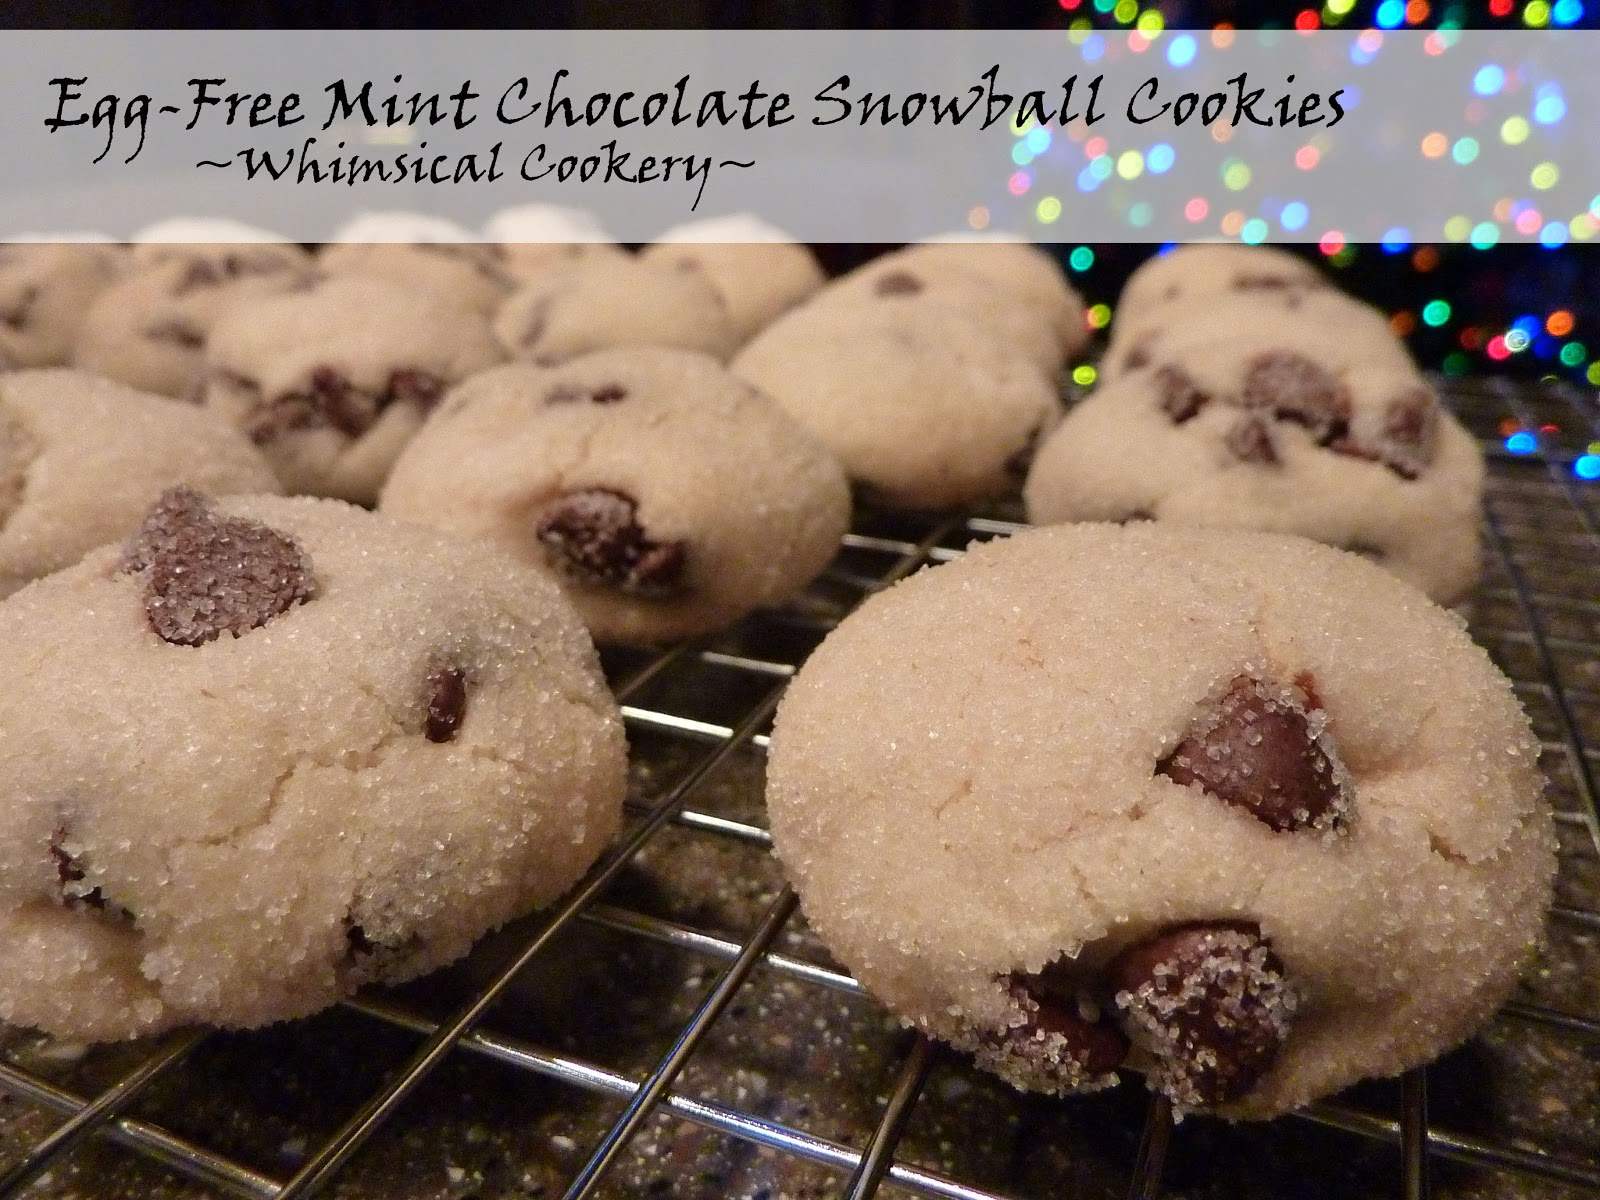 Mint Chocolate Snowball Cookies Egg Free And Original Nestle Recipe